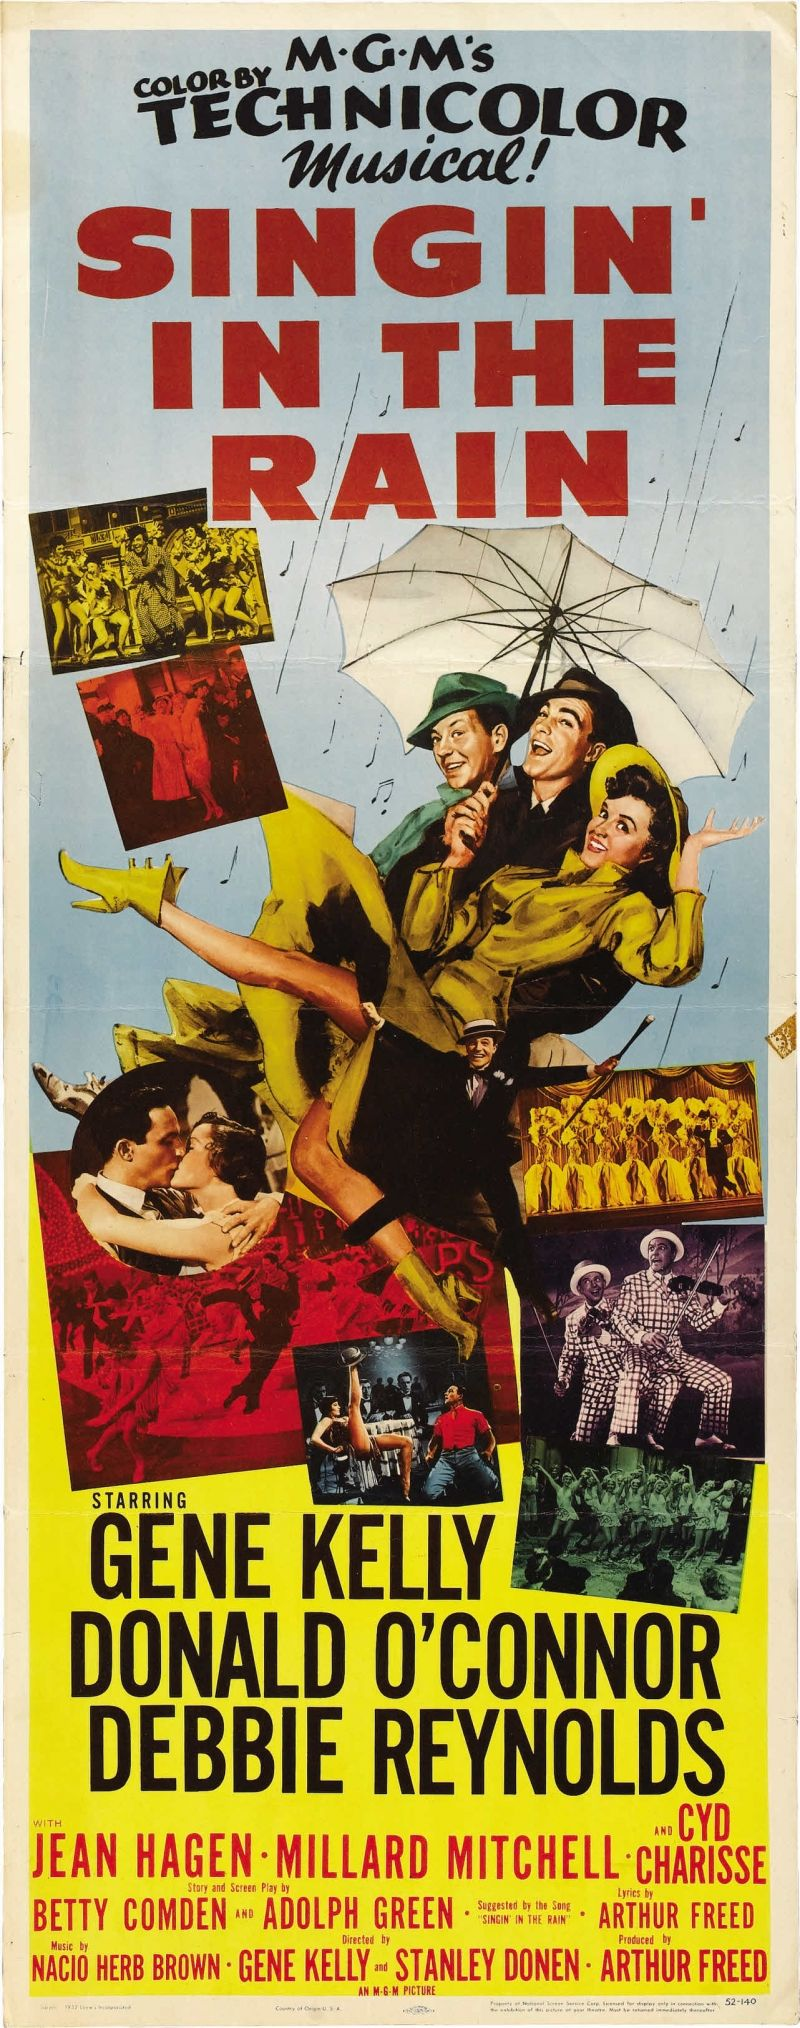 SINGIN' IN THE RAIN (1952) | about the start of the 'talkies' period. One of my favourite movies! 1920's and tap dancing, can't go wrong there :)